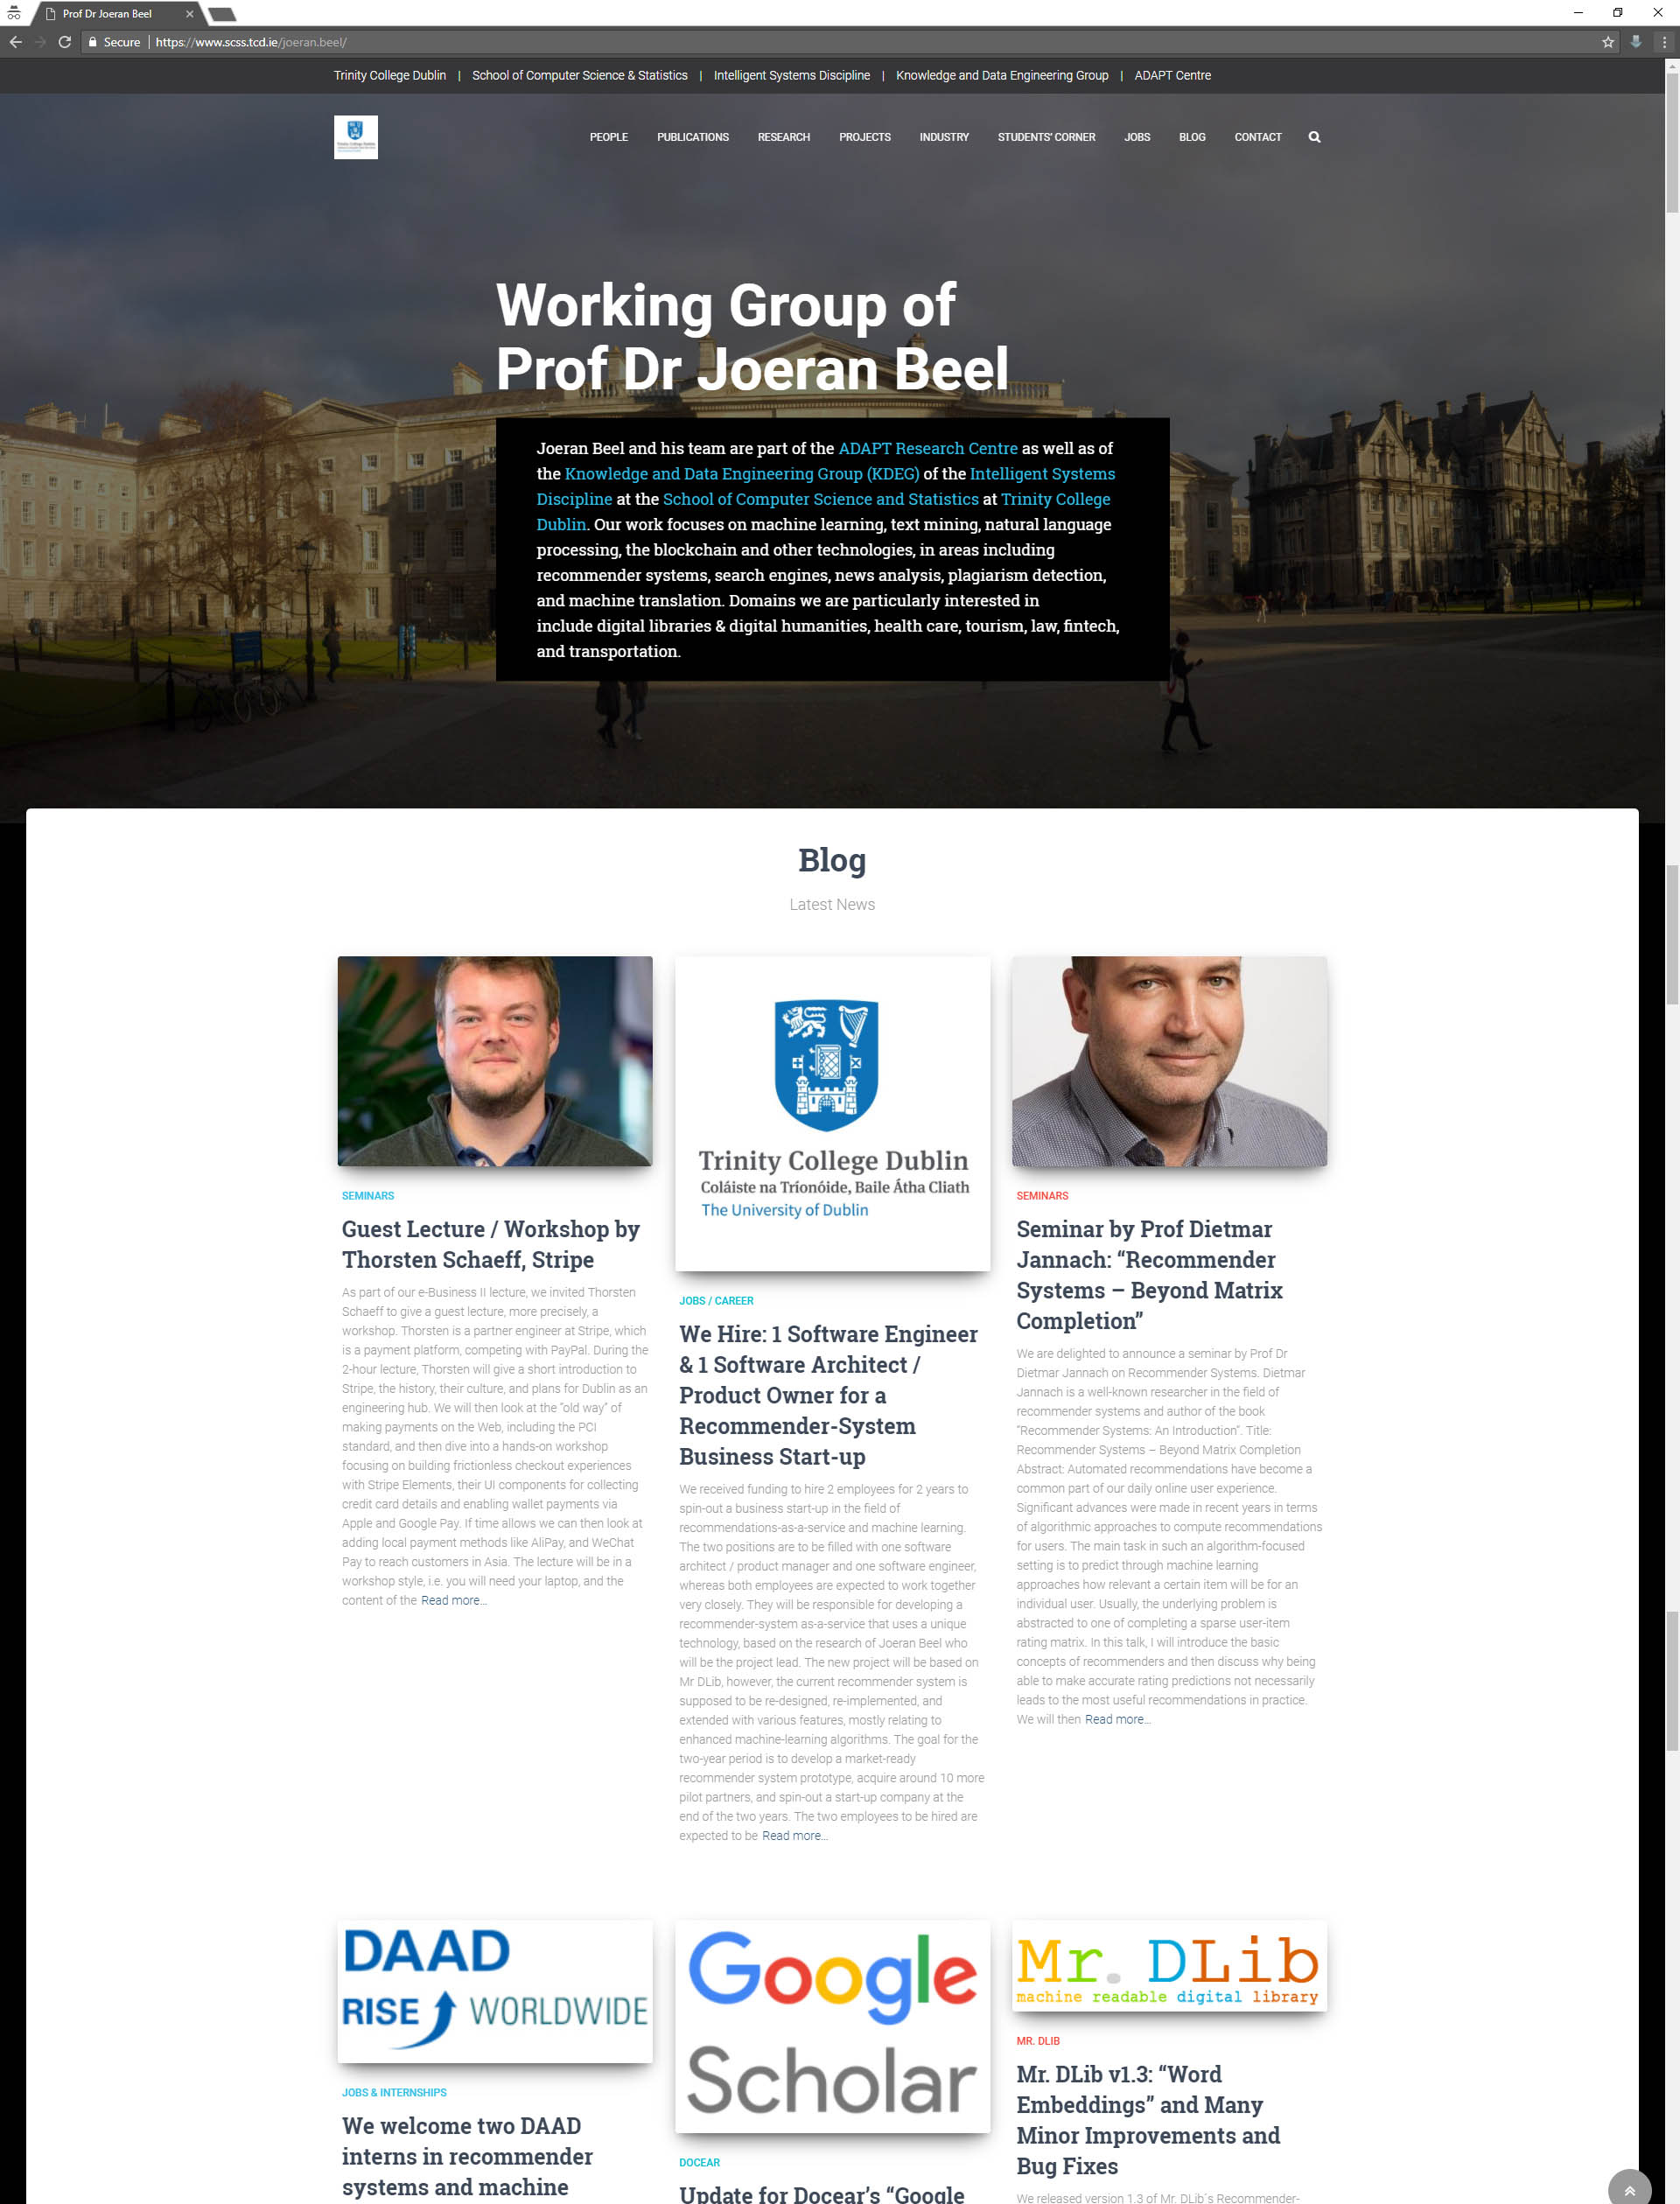 Homepage of the Working Group of Prof Dr Joeran Beel (Machine Learning and Recommender Systems